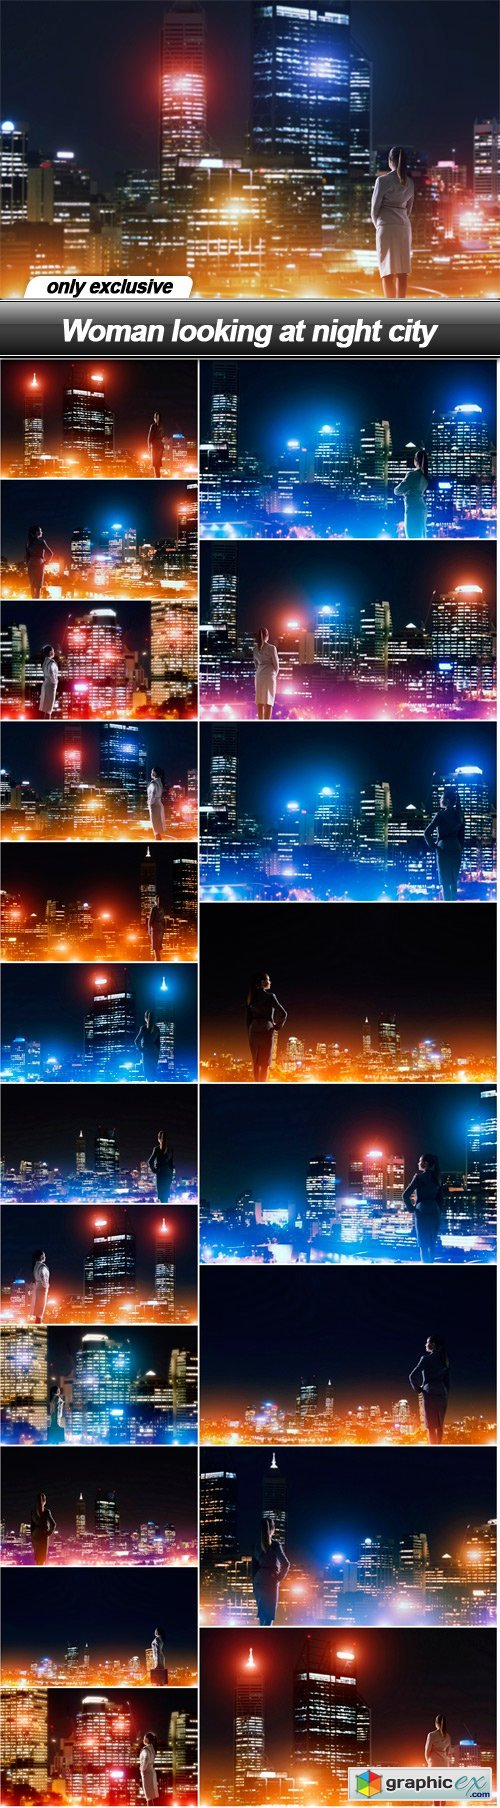 Woman looking at night city - 21 UHQ JPEG